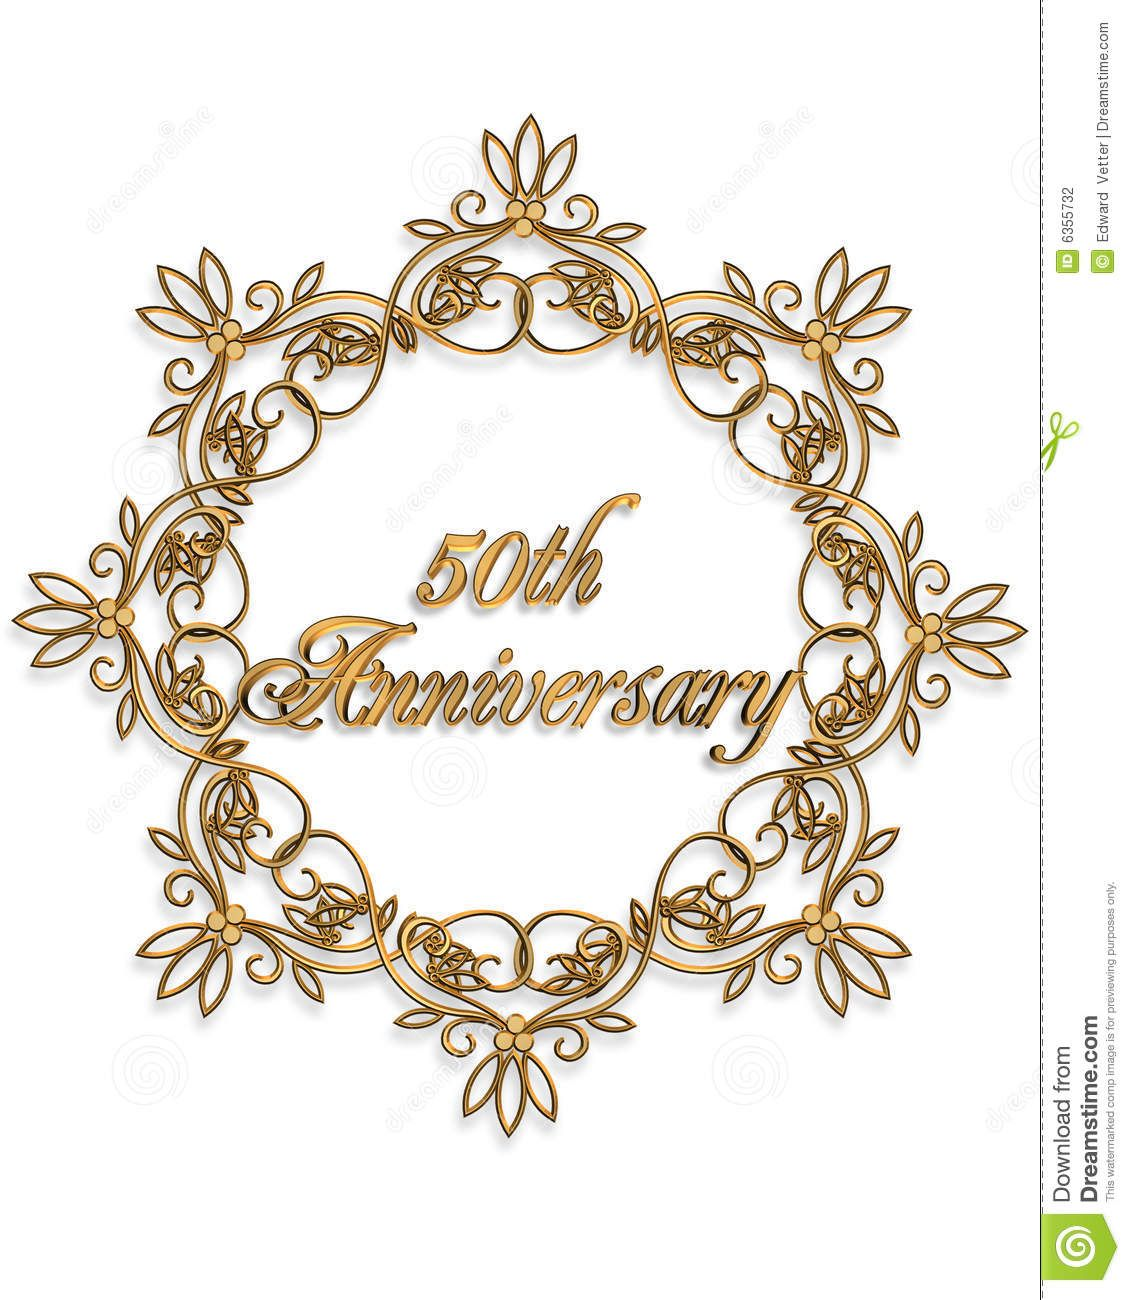 50th Wedding Anniversary Quotes: 50th Anniversary Clip Art For Cards Clipart